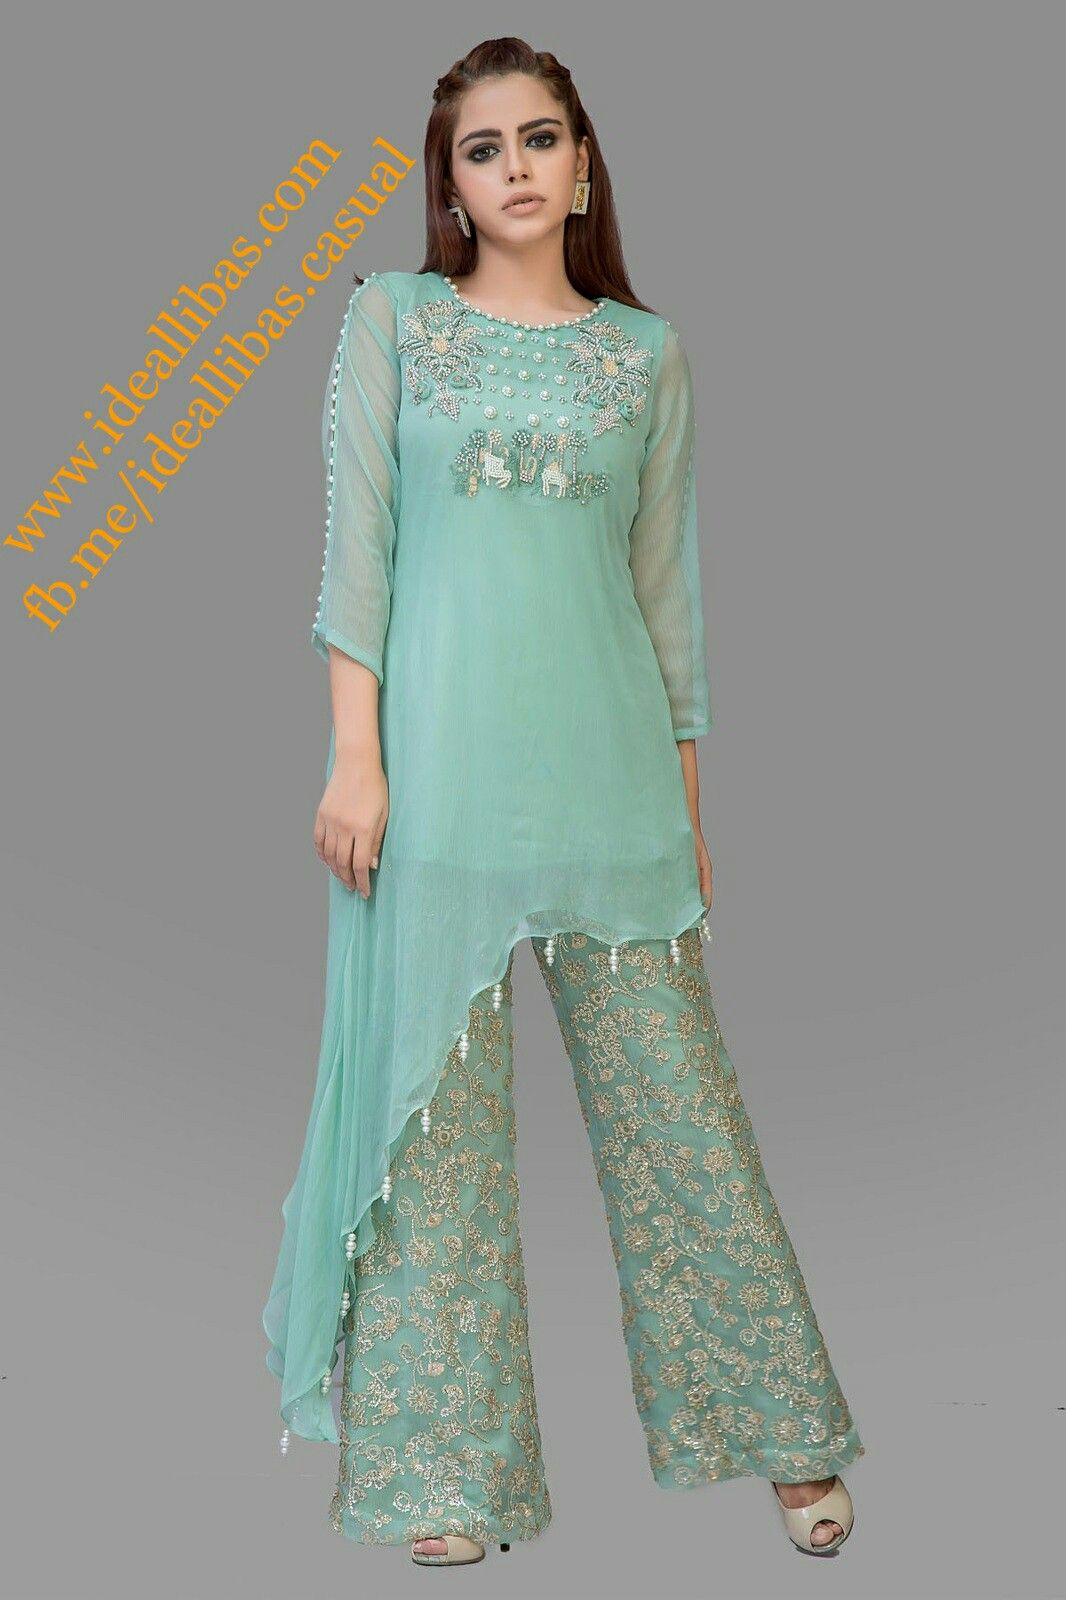 We make all types of Bridal Dresses, Partywear Dresses, Casual ...